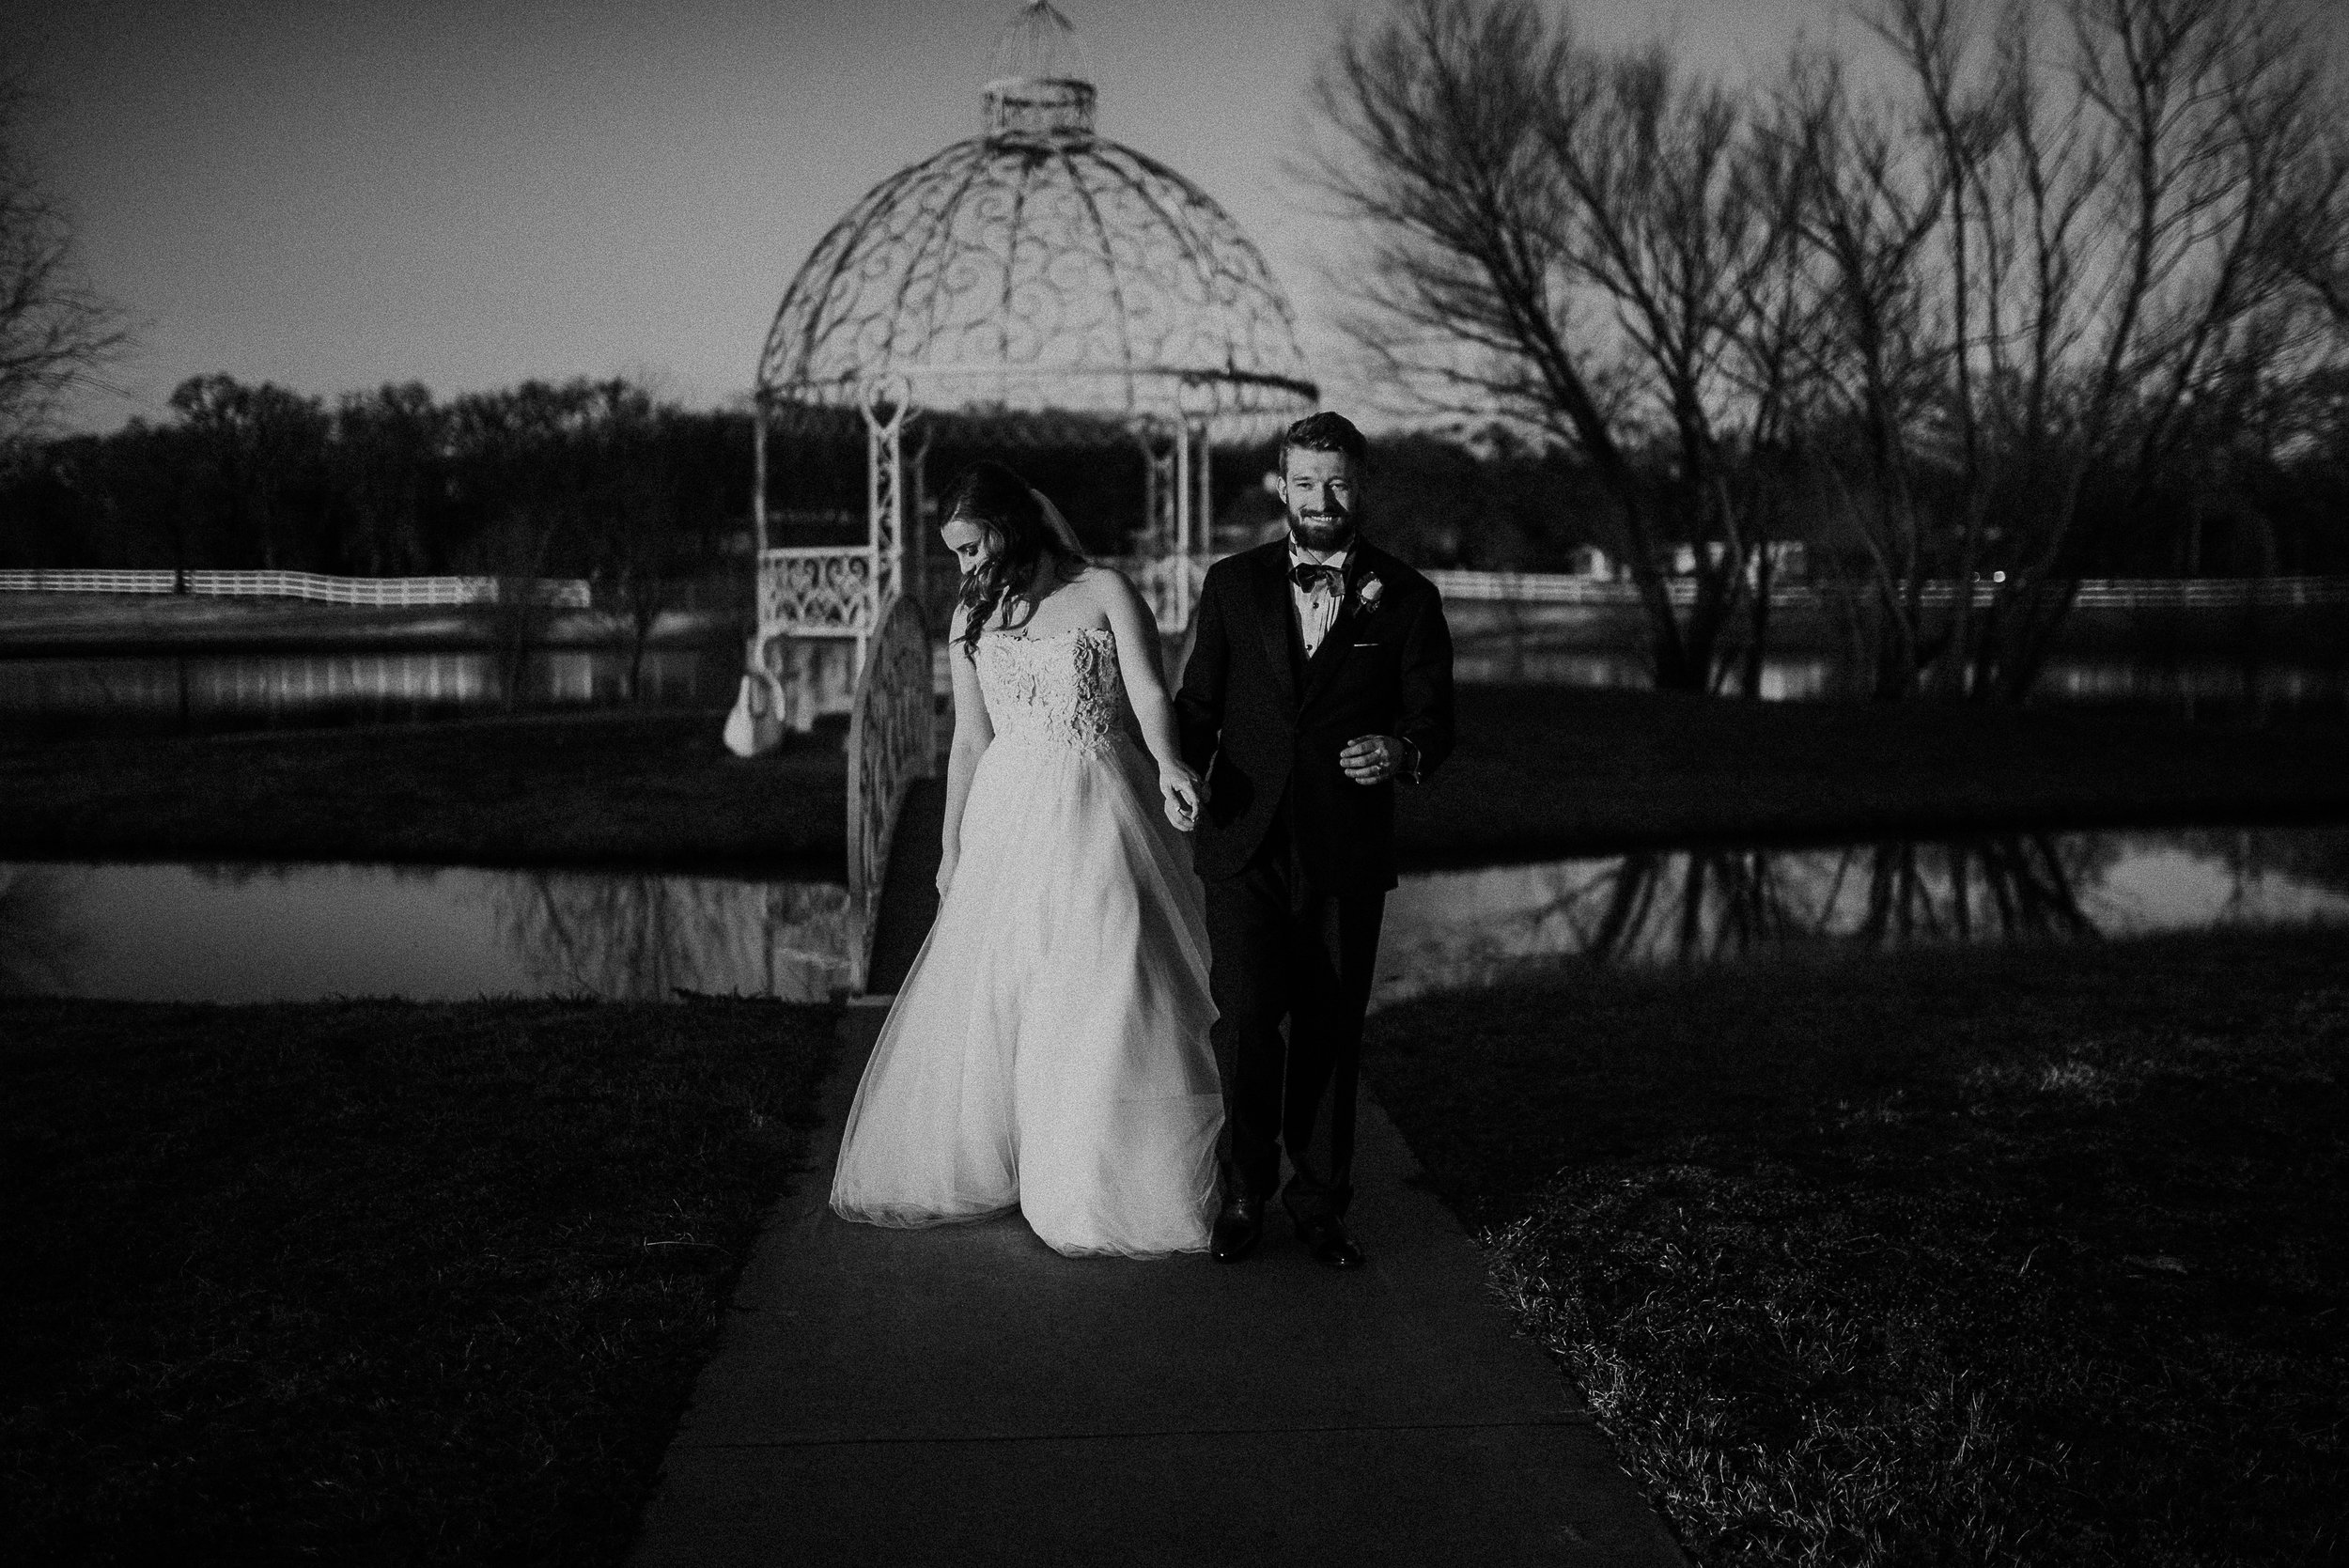 Dallas_Fort_Worth_wedding_Photographer_lone_star_mansion_burleson_texas_108